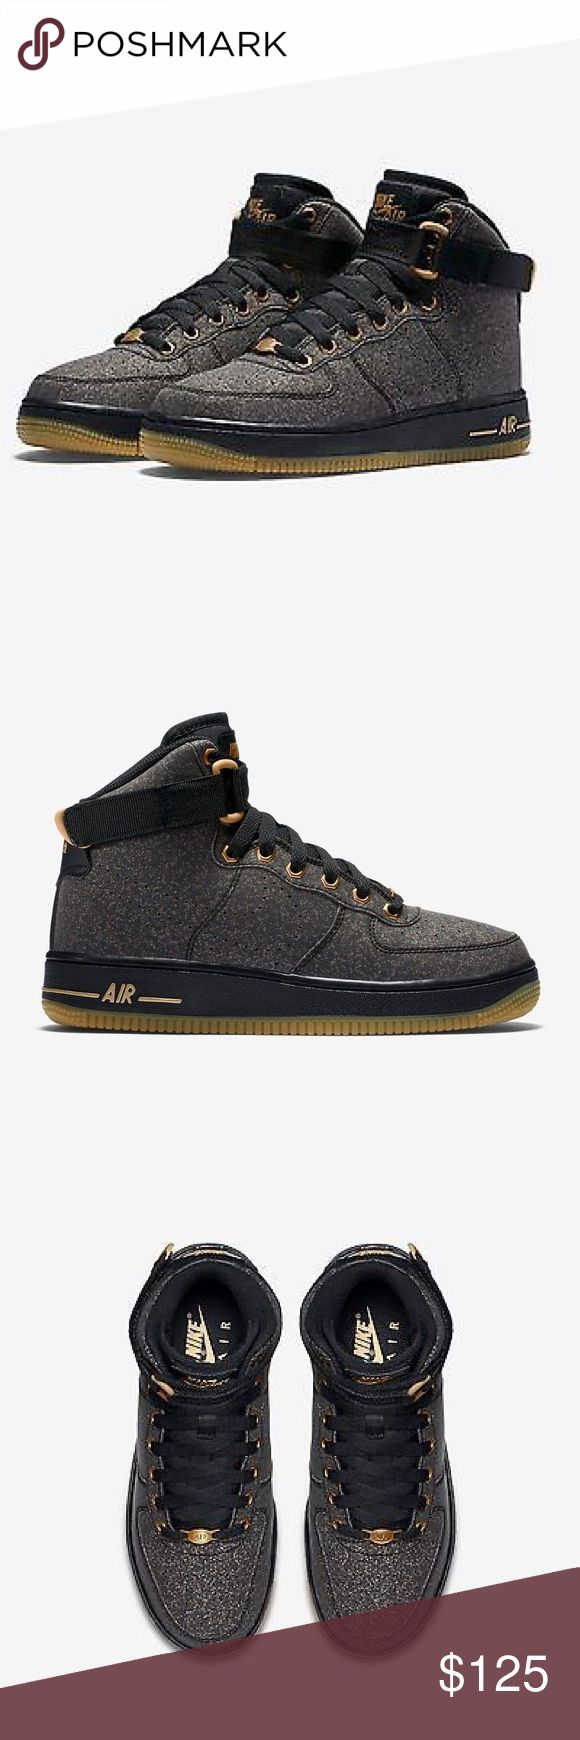 NIKE AIR FORCE 1 HIGH SHOES HIGH TOPS WOMENS SIZE8 Shoes are a size 6.5 youth. Which is a women's size 8. I posted a sizing chart for your convenience. Brand new without box. 100% authentic Nike Shoes Sneakers